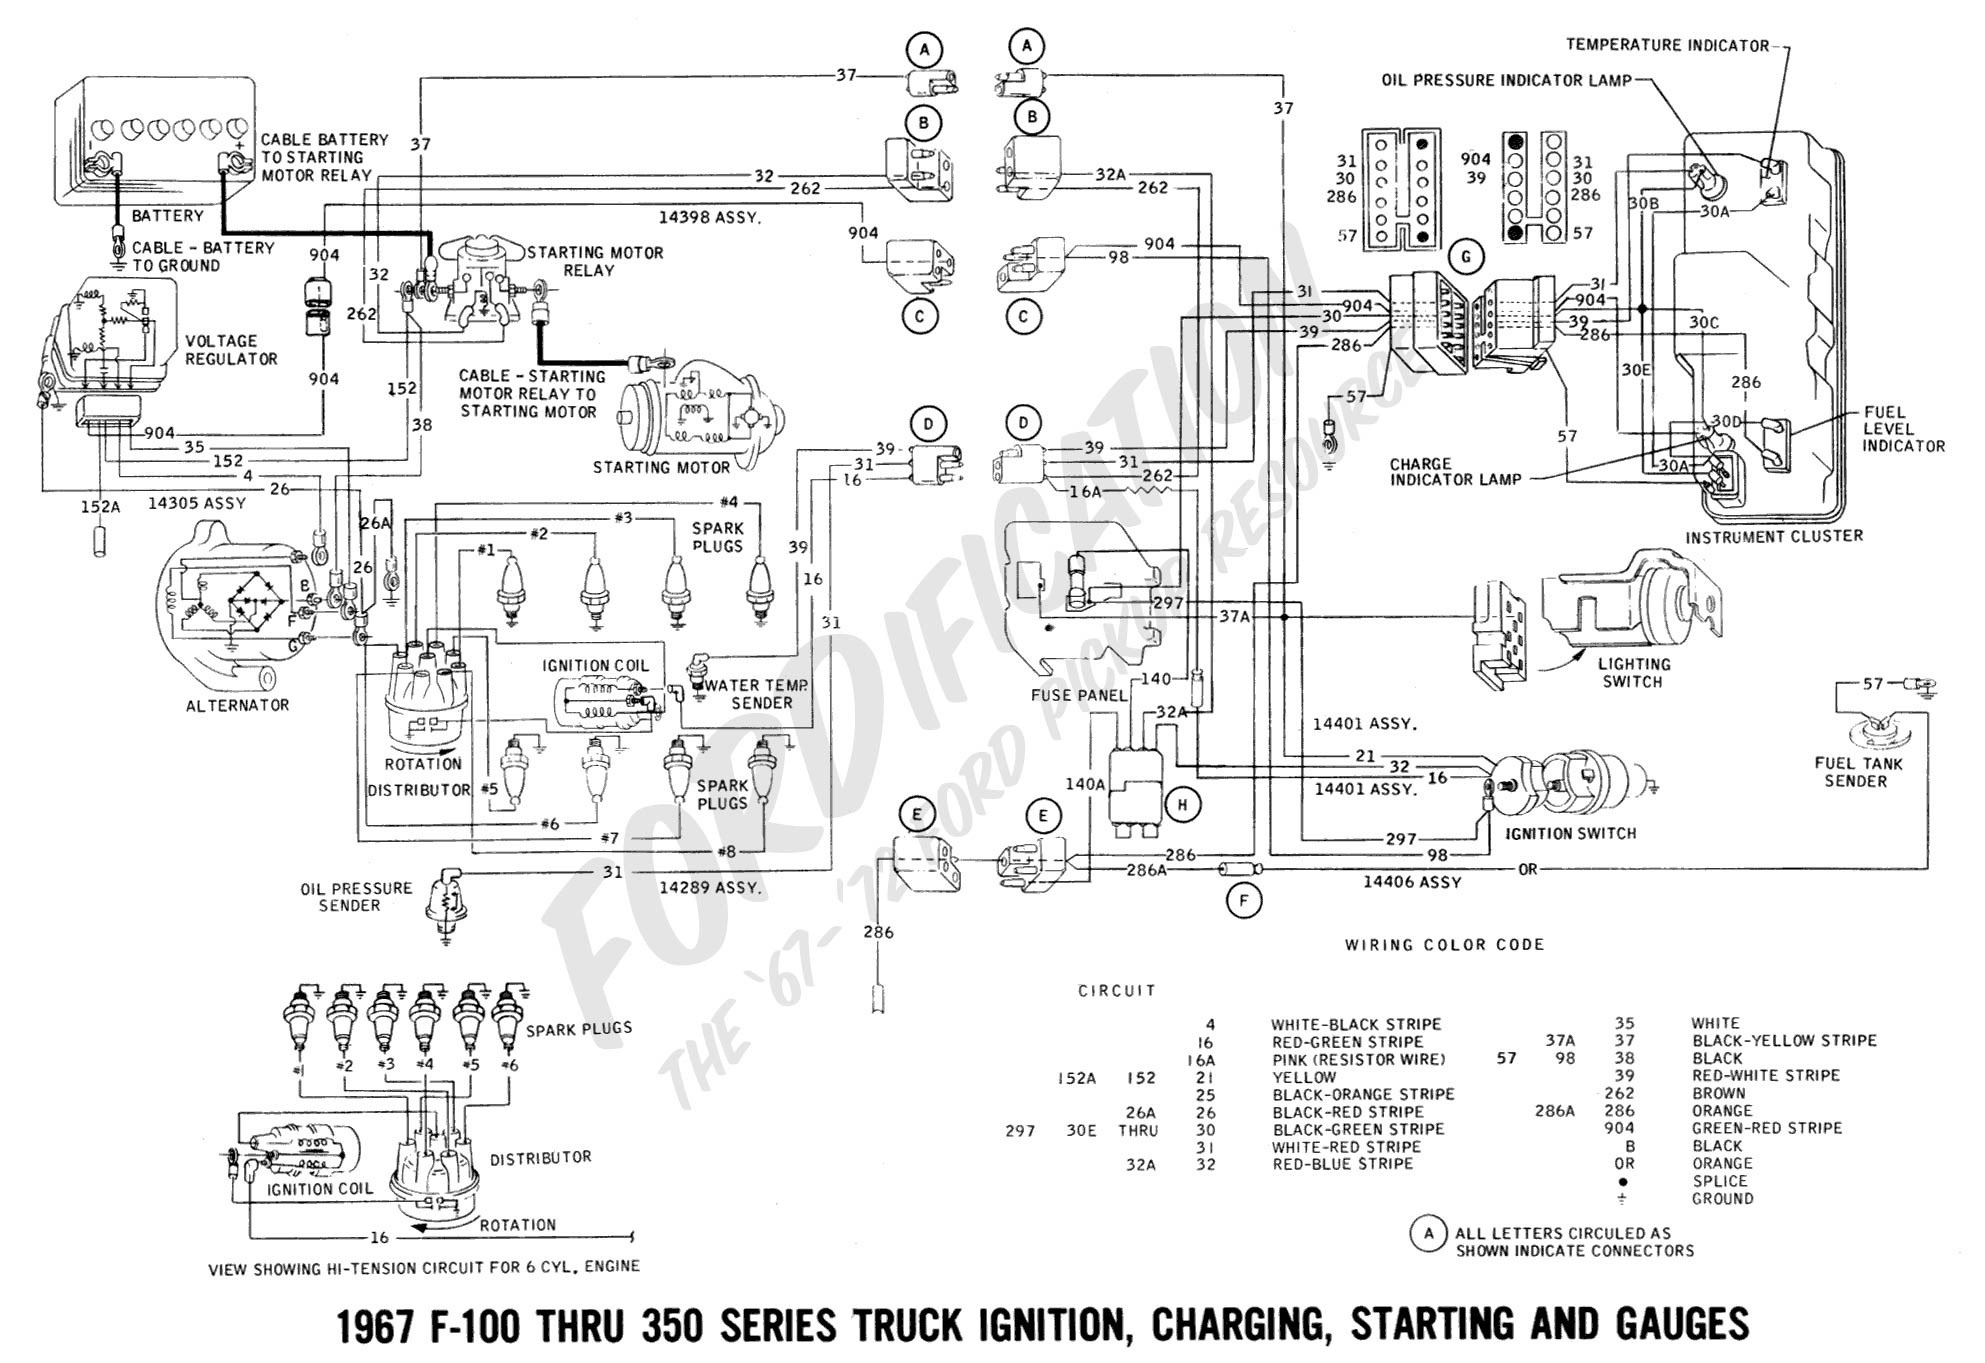 Flat Head Engine Diagram ford Ignition Switch Wiring Diagram F350 Battery Wiring Diagram Of Flat Head Engine Diagram